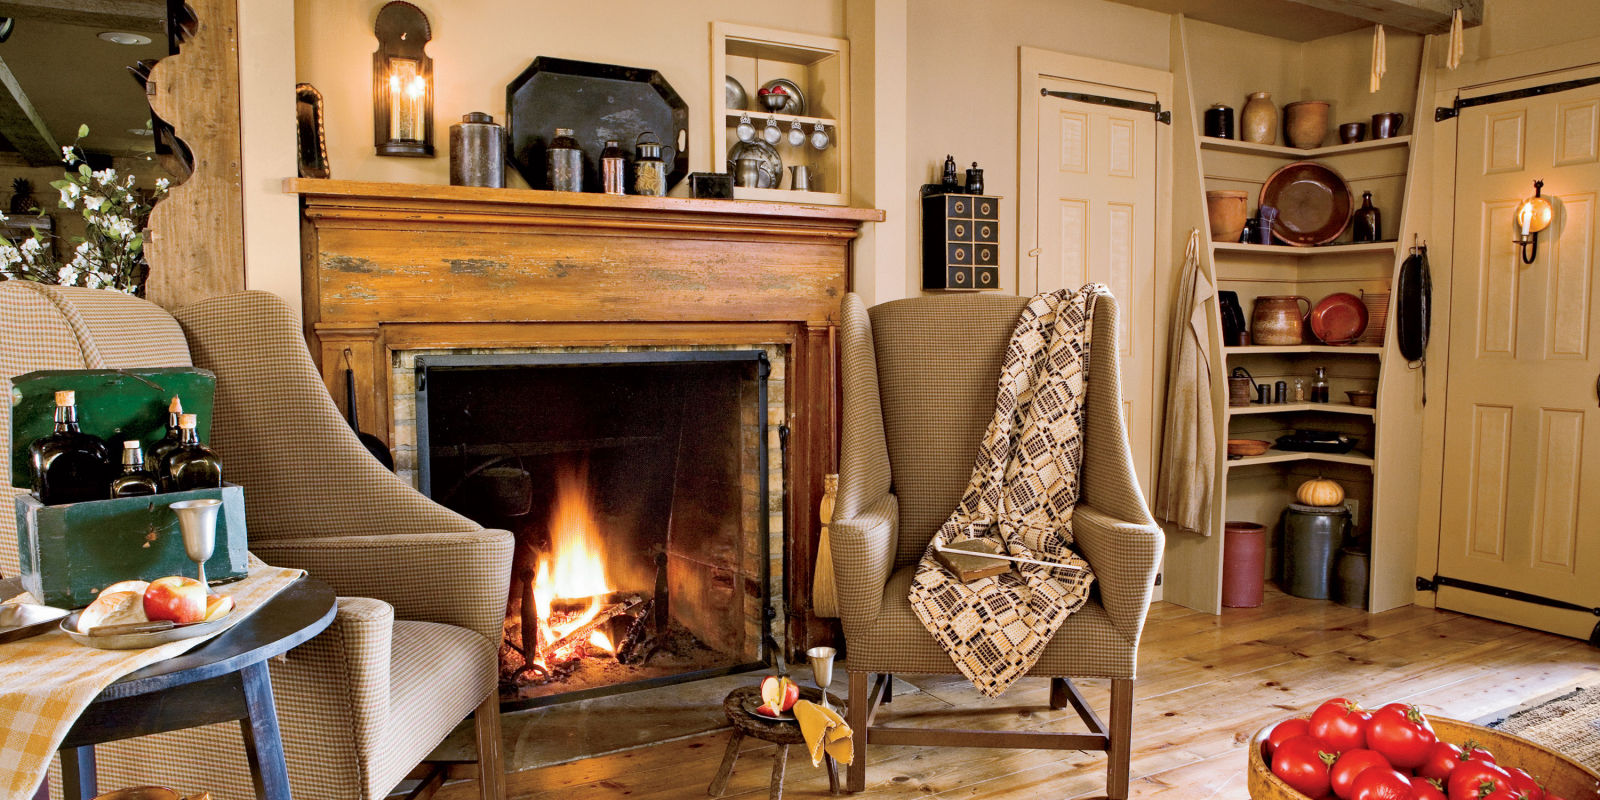 40 Fireplace Design Ideas